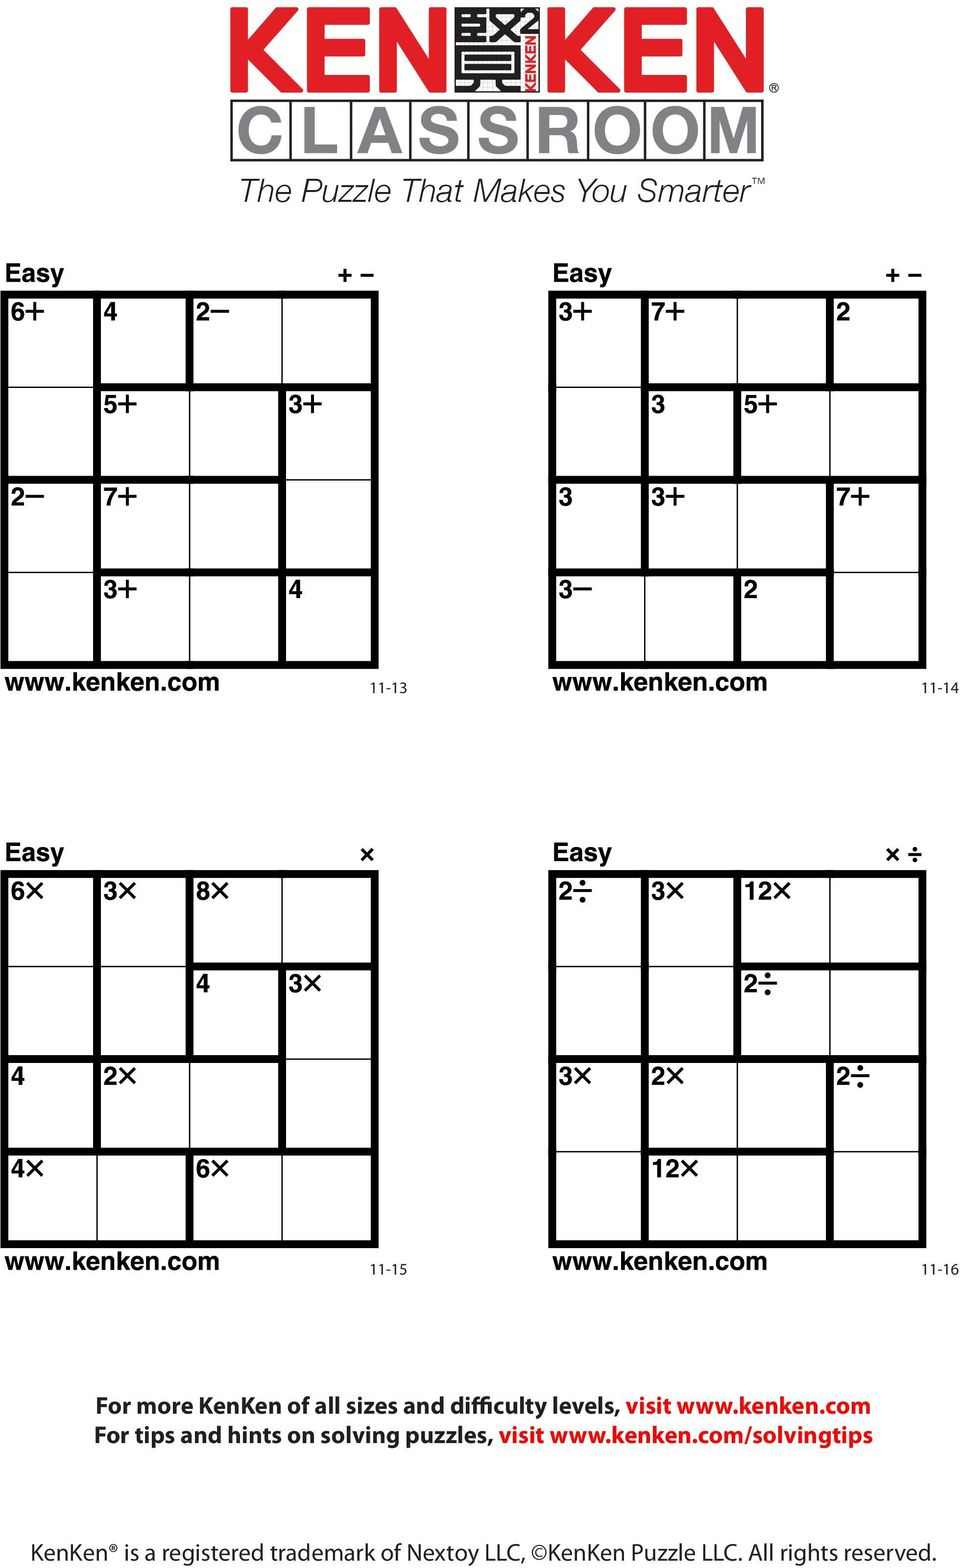 The Puzzle That Makes You Smarter - Pdf - Printable Kenken Puzzle 5X5